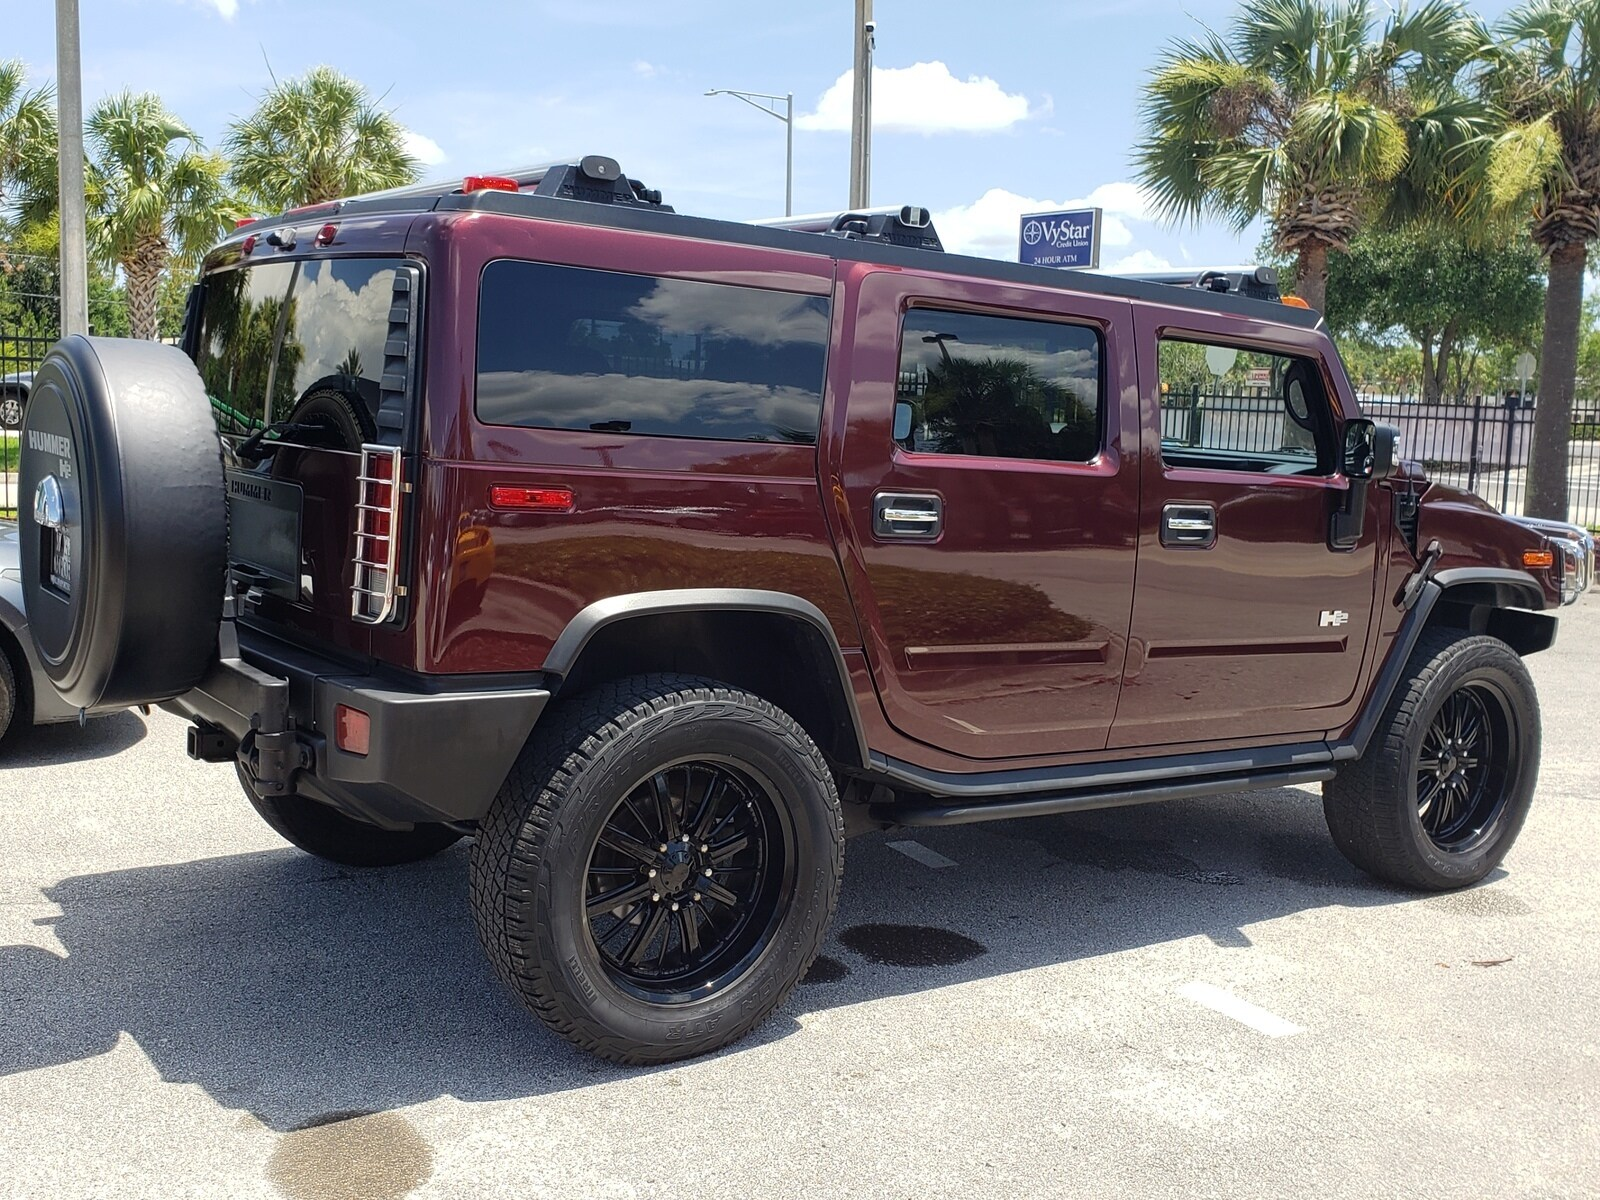 How Much Does A Hummer H2 Cost Luxury Used 2006 Hummer H2 4dr Wagon 4wd Collector Series for